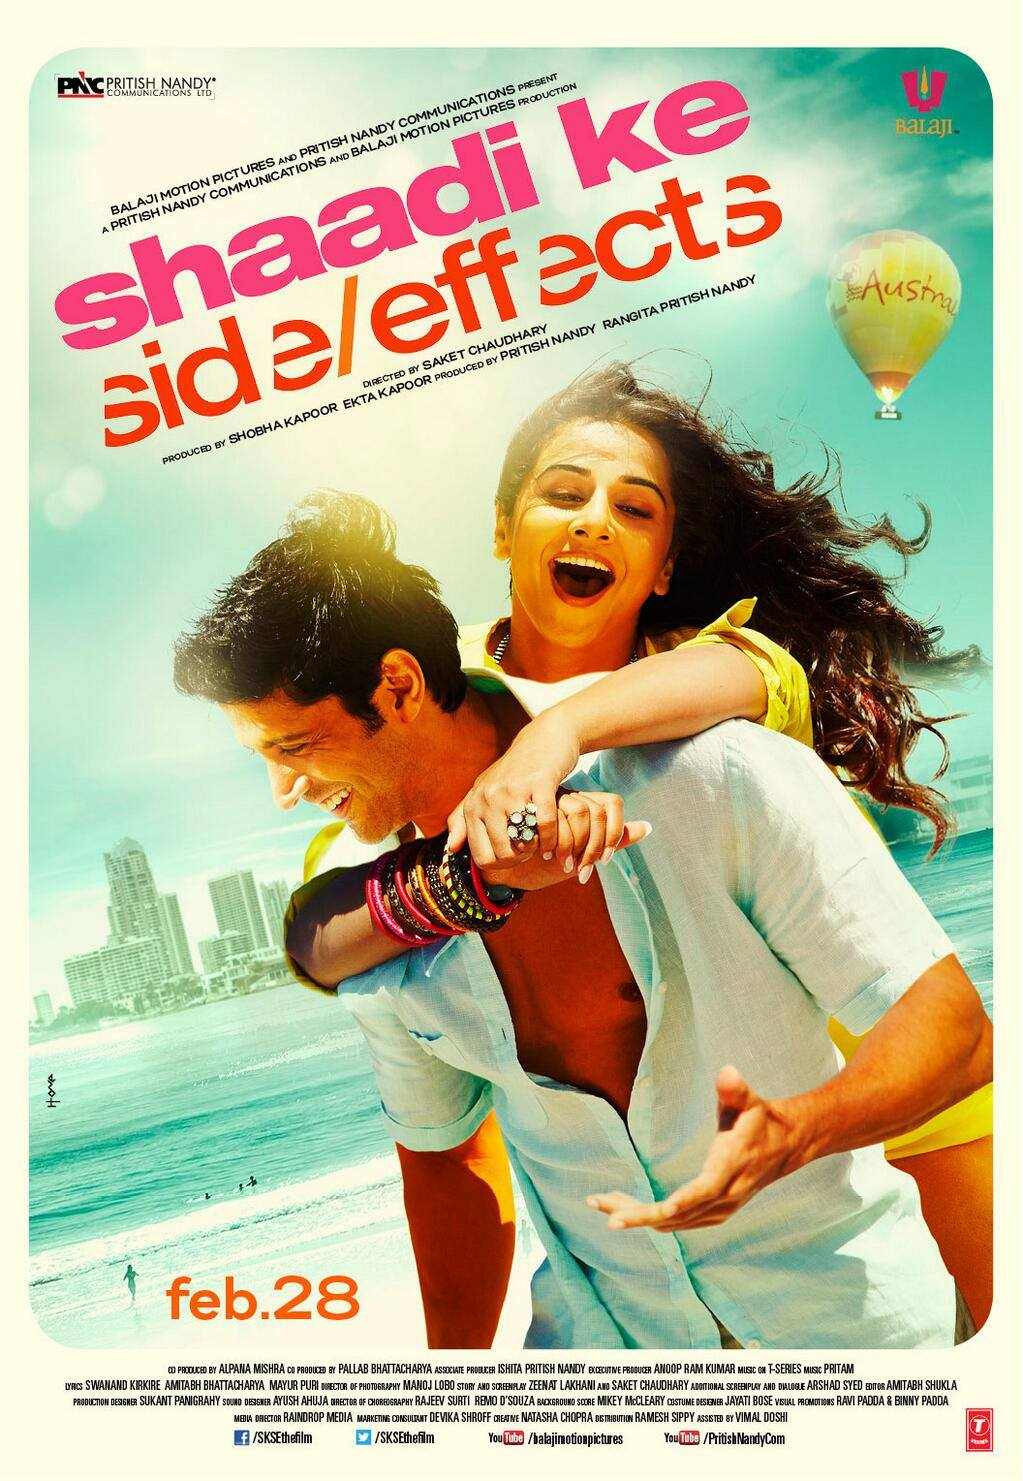 shaadi ke side effects movie poster and trailer xcitefunnet